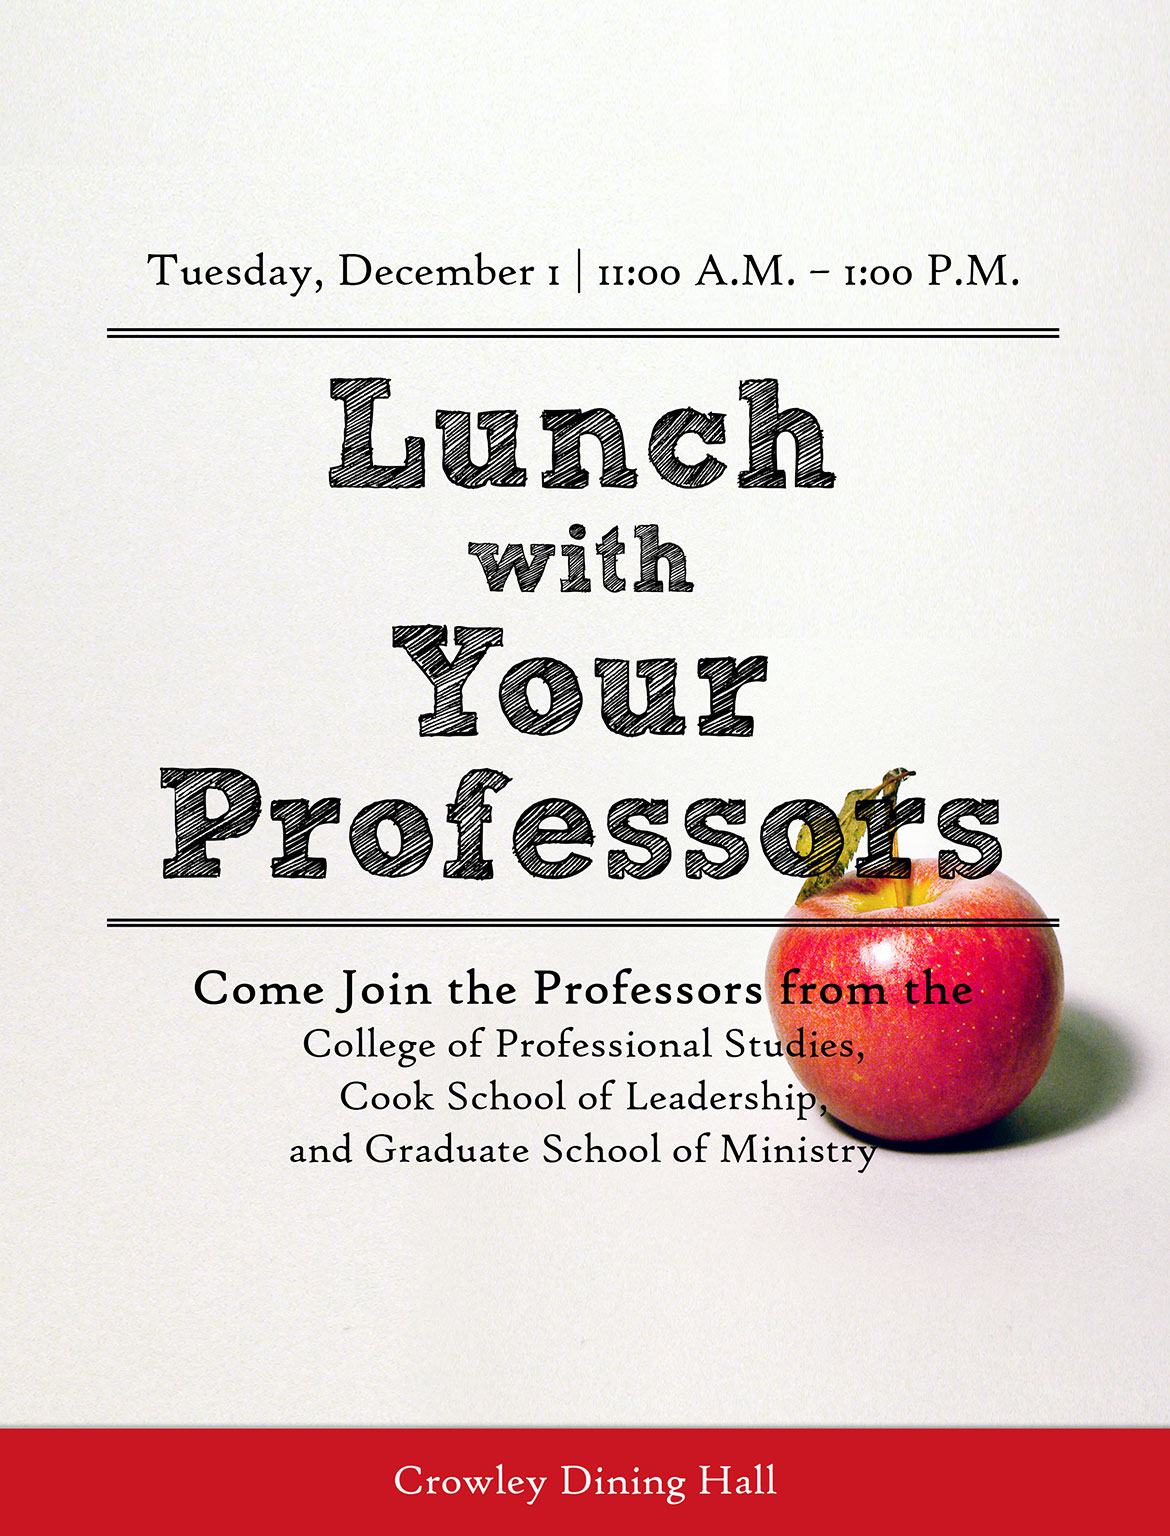 Lunch with Your Professors - Tuesday, December 1 – 11:00 a.m. to 1:00 p.m. – College of Professional Studies, Cook School of Leadership, and Graduate School of Ministry